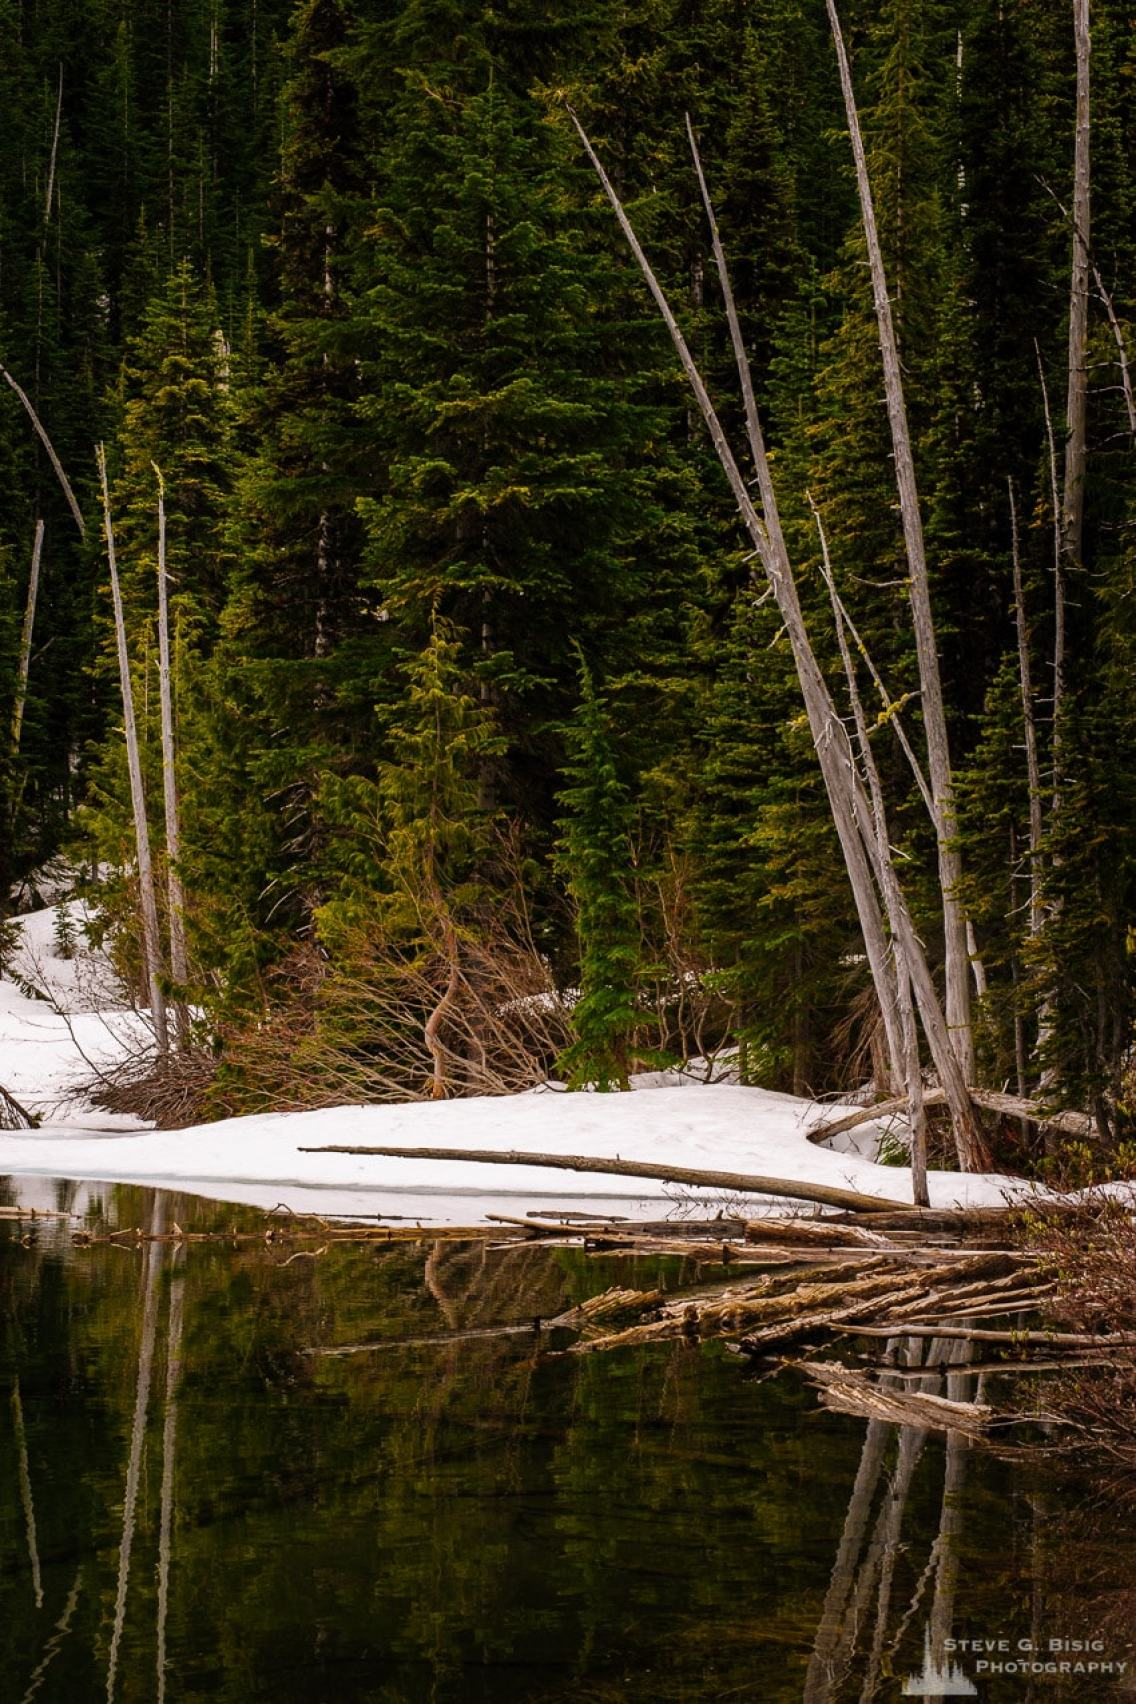 A photograph of the early Spring forest at Crystal Lake in the Mount Rainier National Park, Washington.